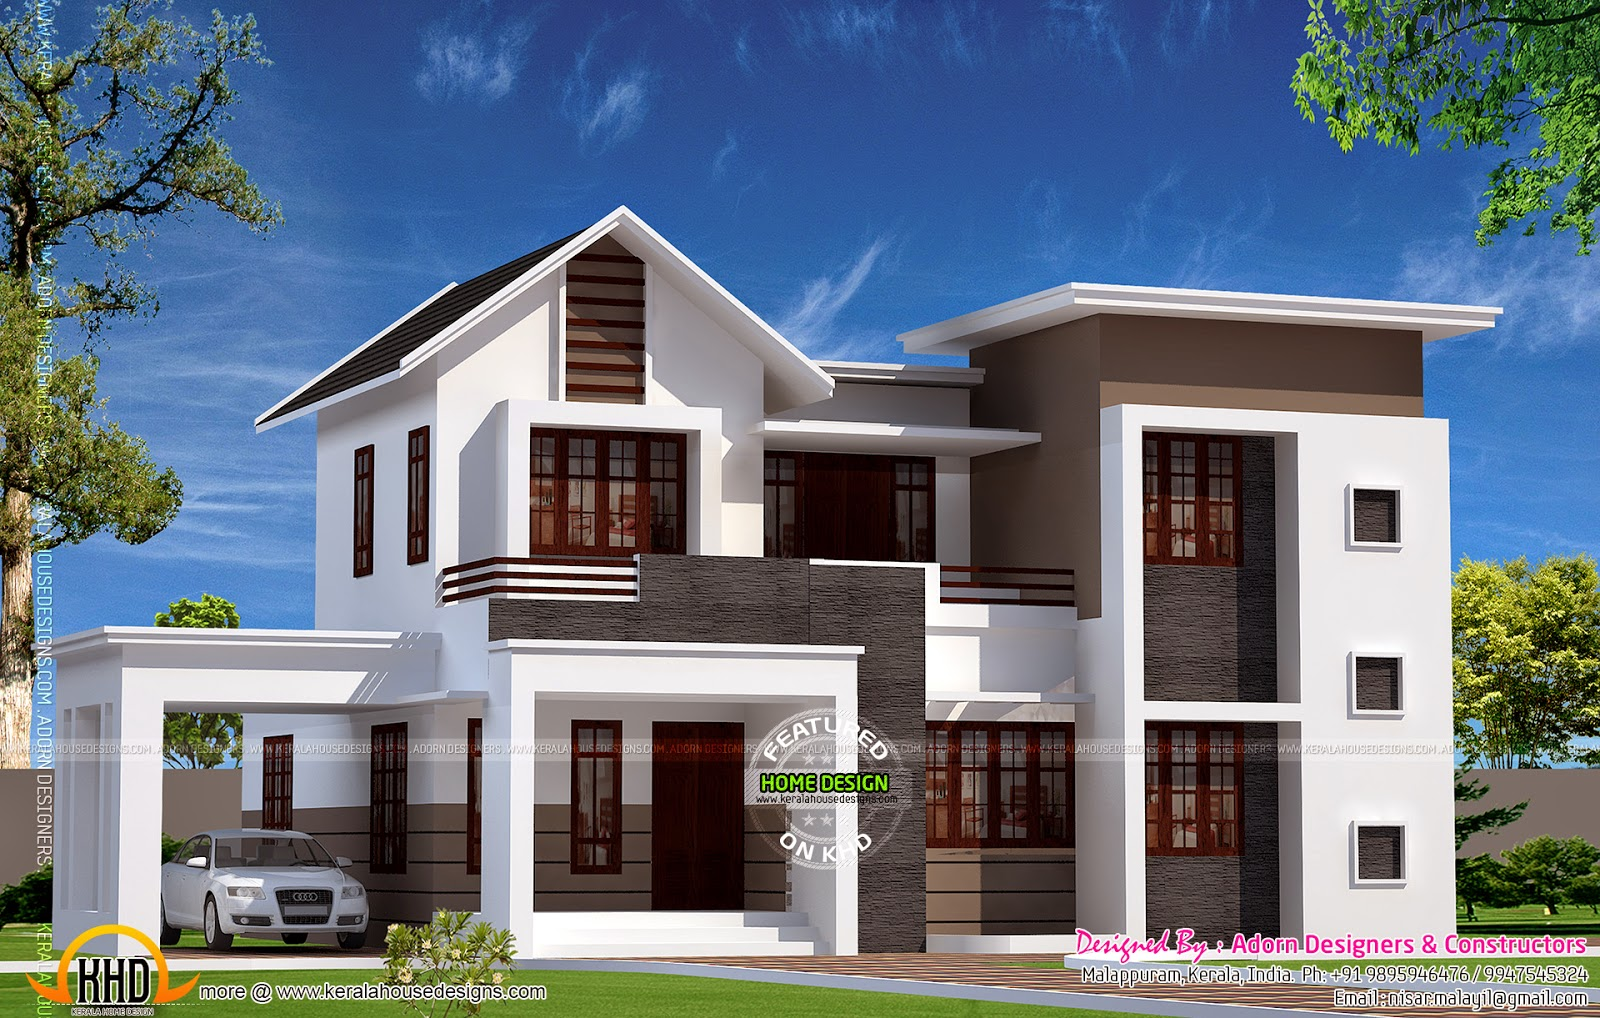 New house design in 1900 sq feet kerala home design and Best home designs of 2014